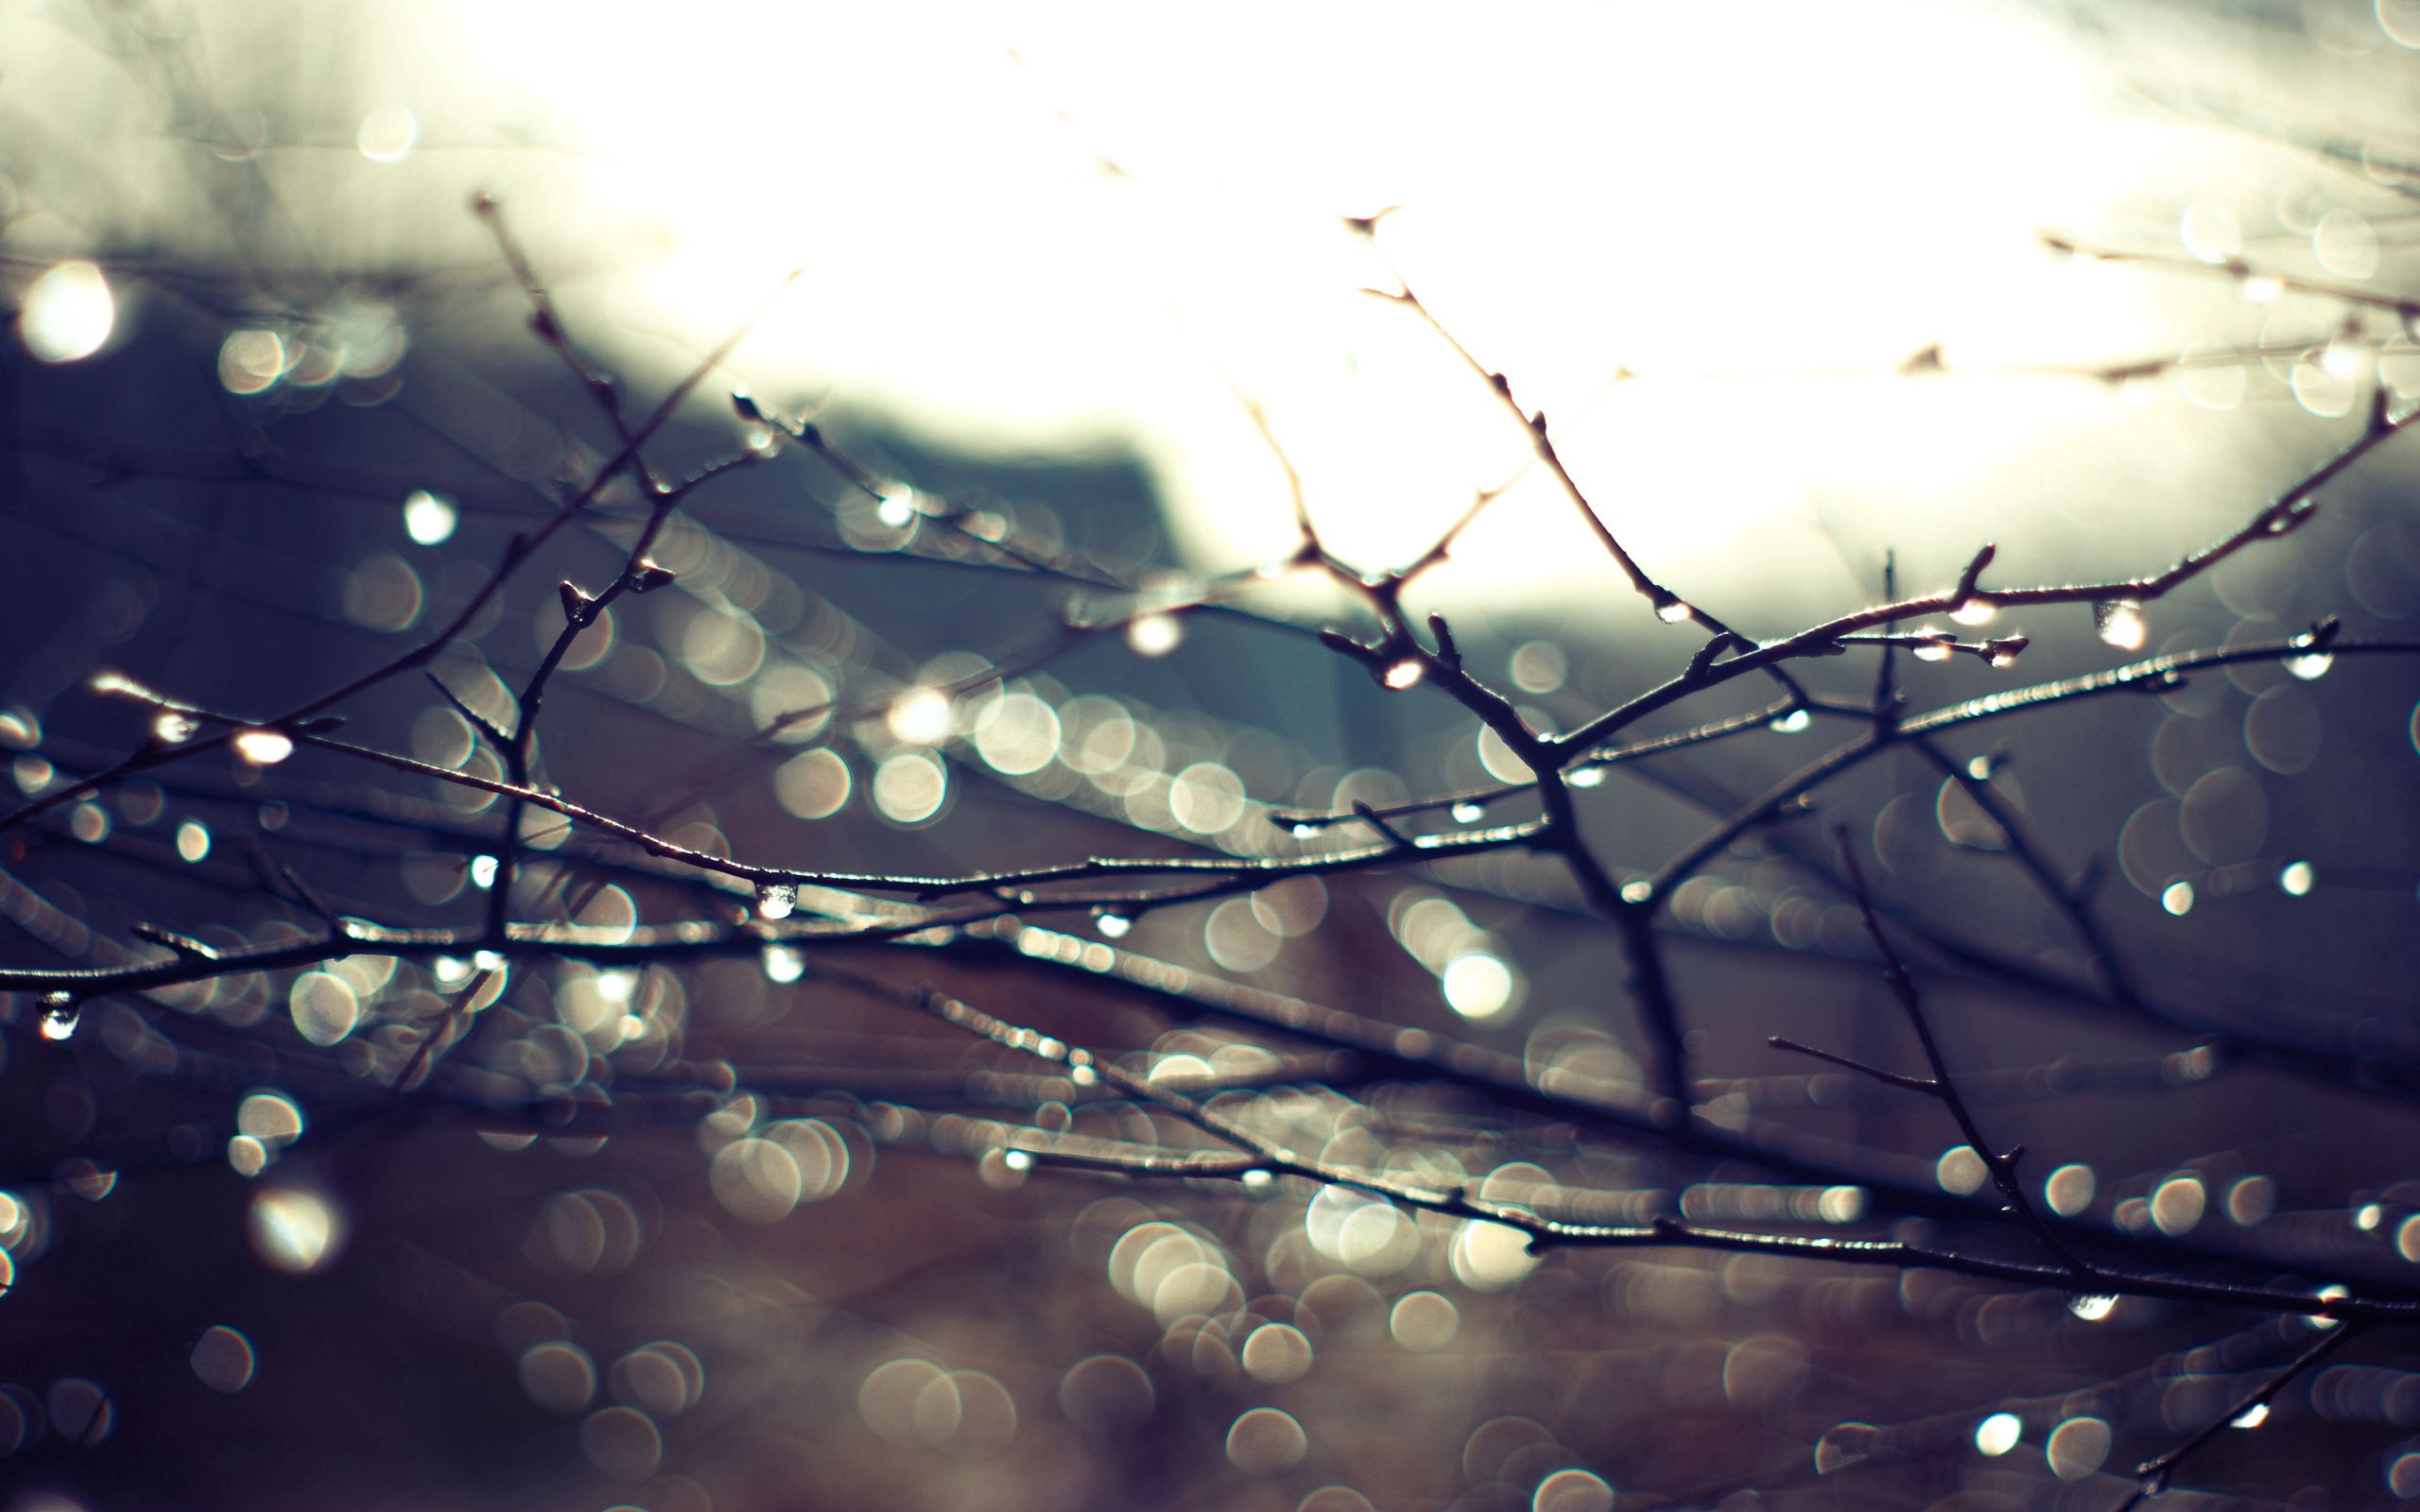 120444 download wallpaper Macro, Branches, Drops, Plant, Sky screensavers and pictures for free